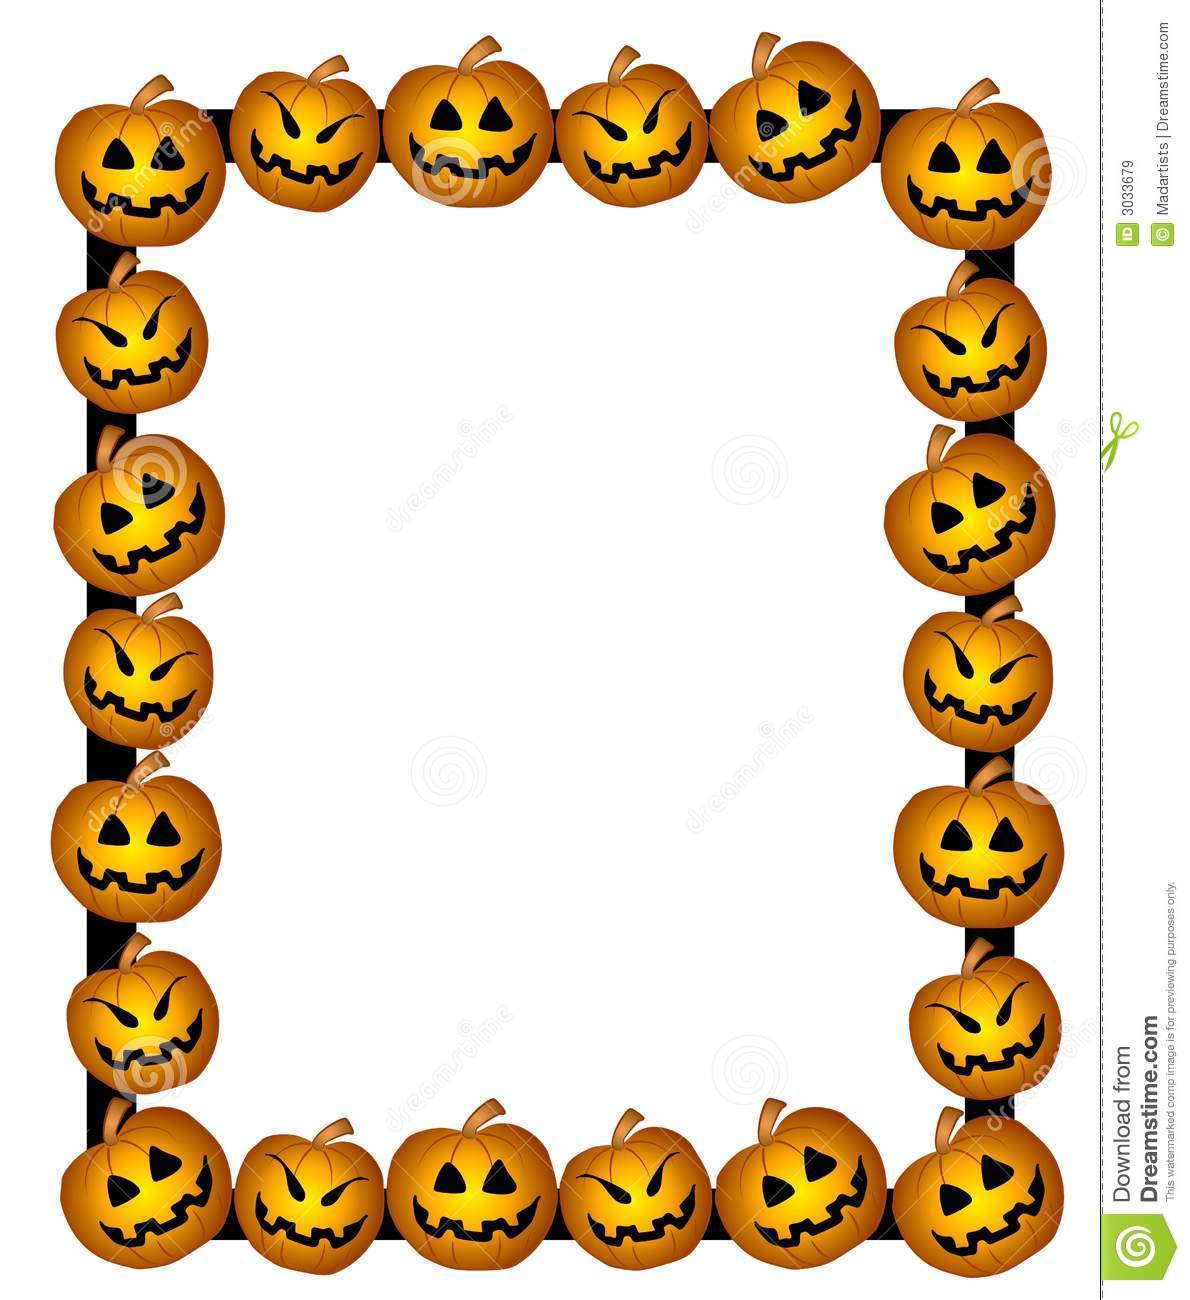 graphic library stock Border panda free images. Halloween borders clipart